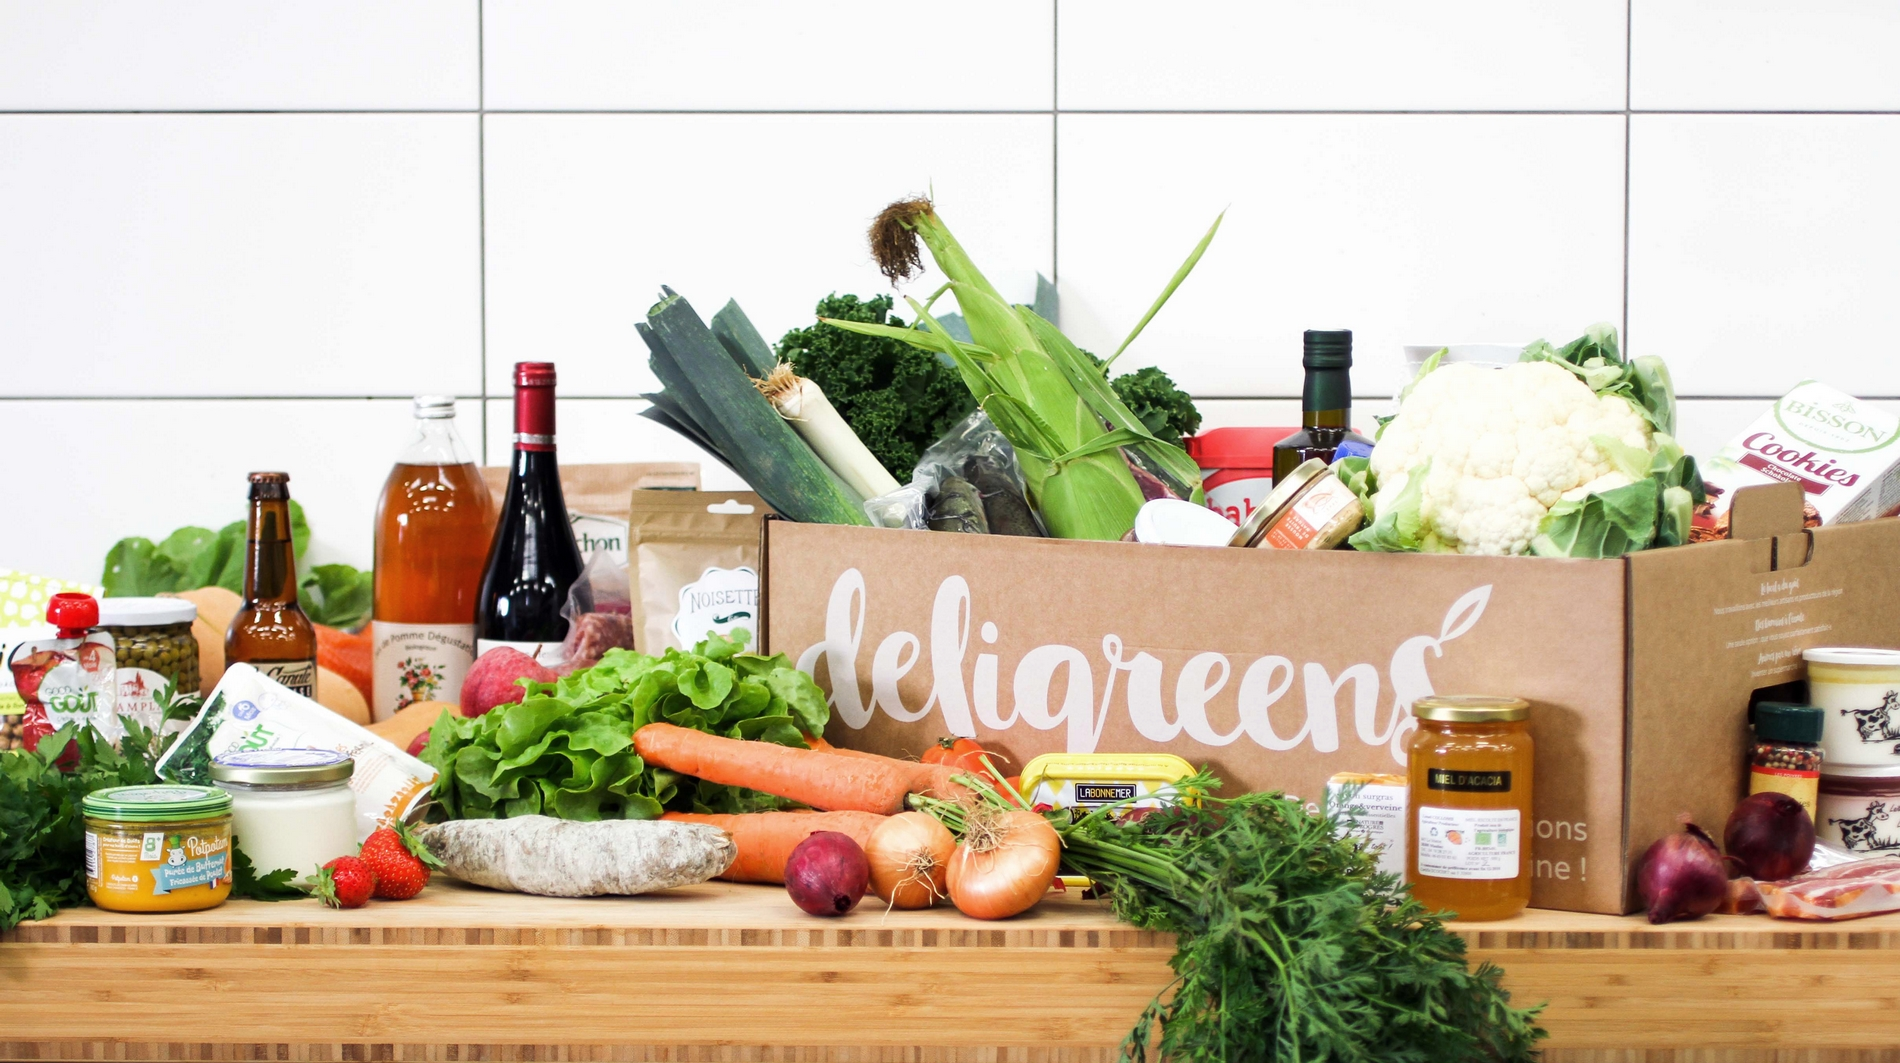 Deligreens - Start-up à Lyon